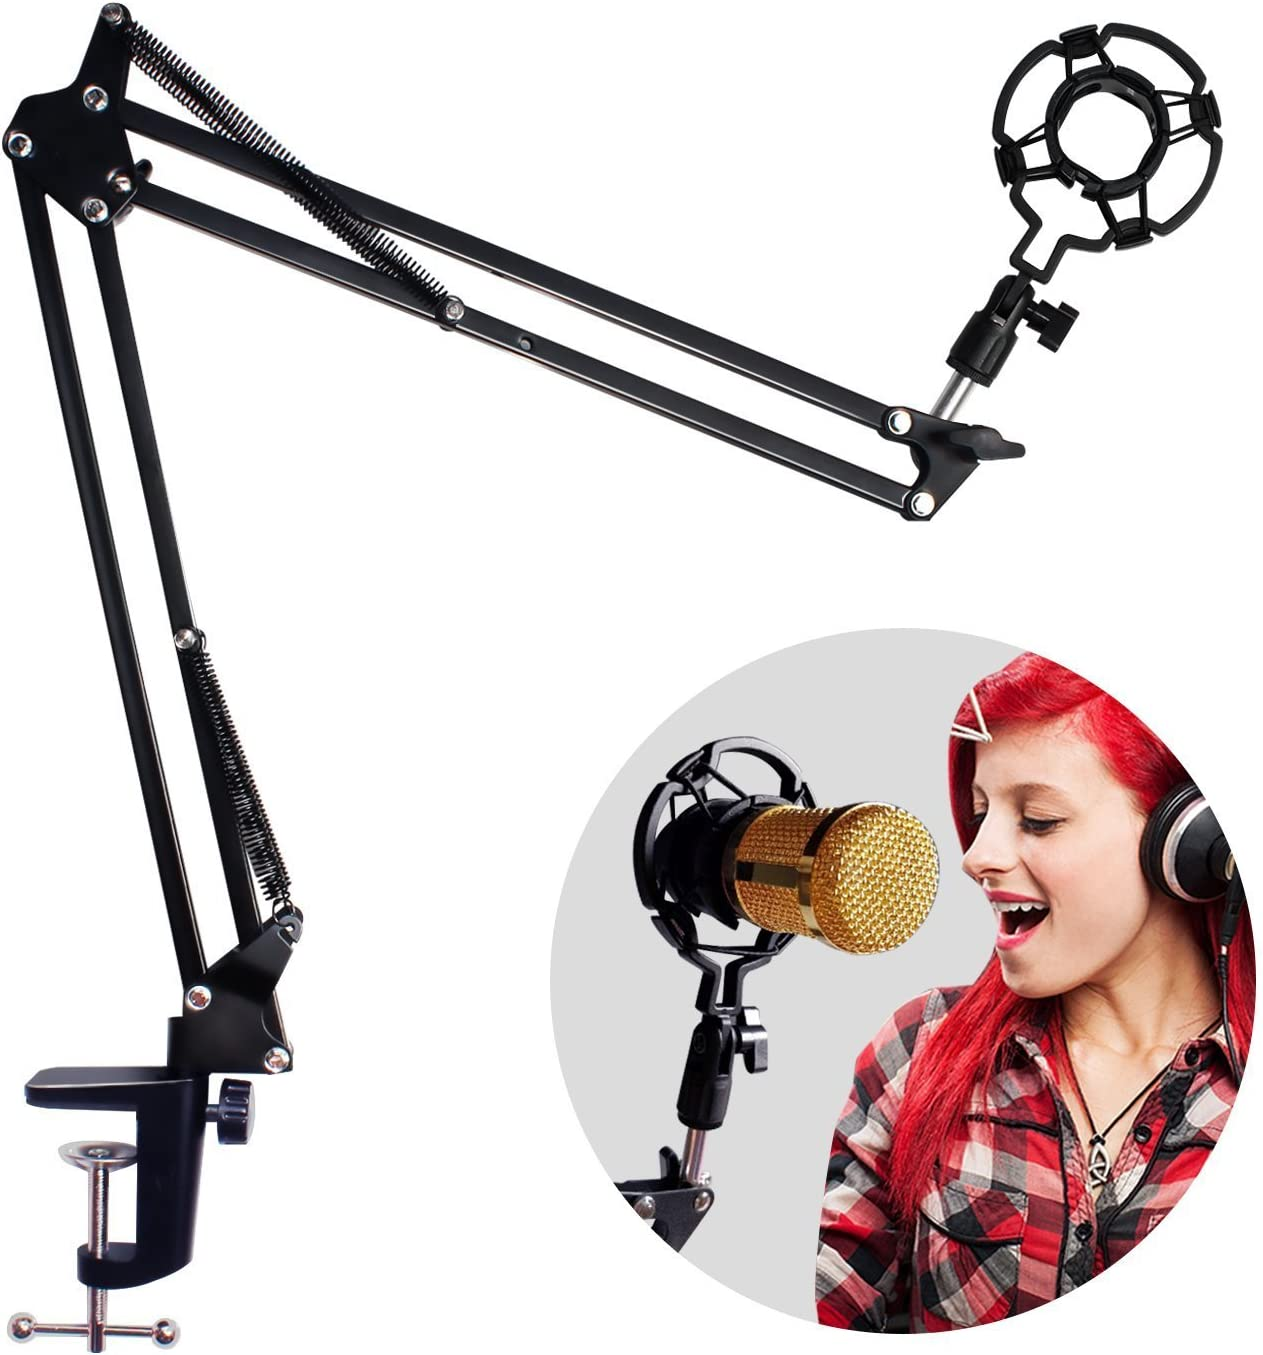 Adjustable Microphone Suspension Boom Scissor Arm Stand with Shock Mount Mic Clip Holder - Compact Mic Stand Made of Zinc Alloy - for Live Broadcasting, Podcast, Solo Artist